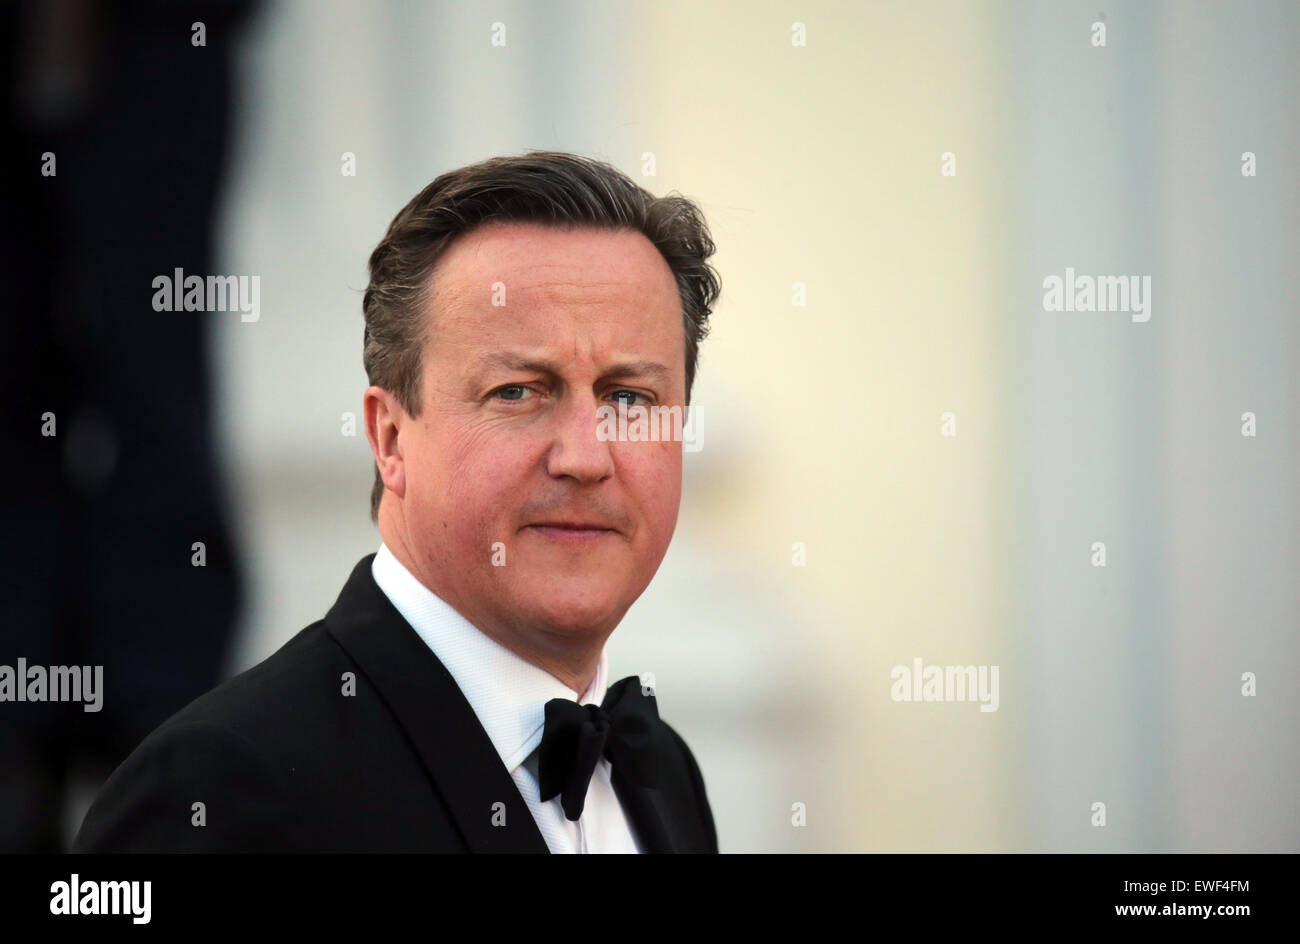 British Prime Minister David Cameron arrives to a state banquet in honor of the British Queen at Bellevue Palace in Berlin,Germany, 24 June 2015. The Queen and her husband are on their fifth state visit to Germany. Photo: KAYNIETFELD/dpa Stock Photo